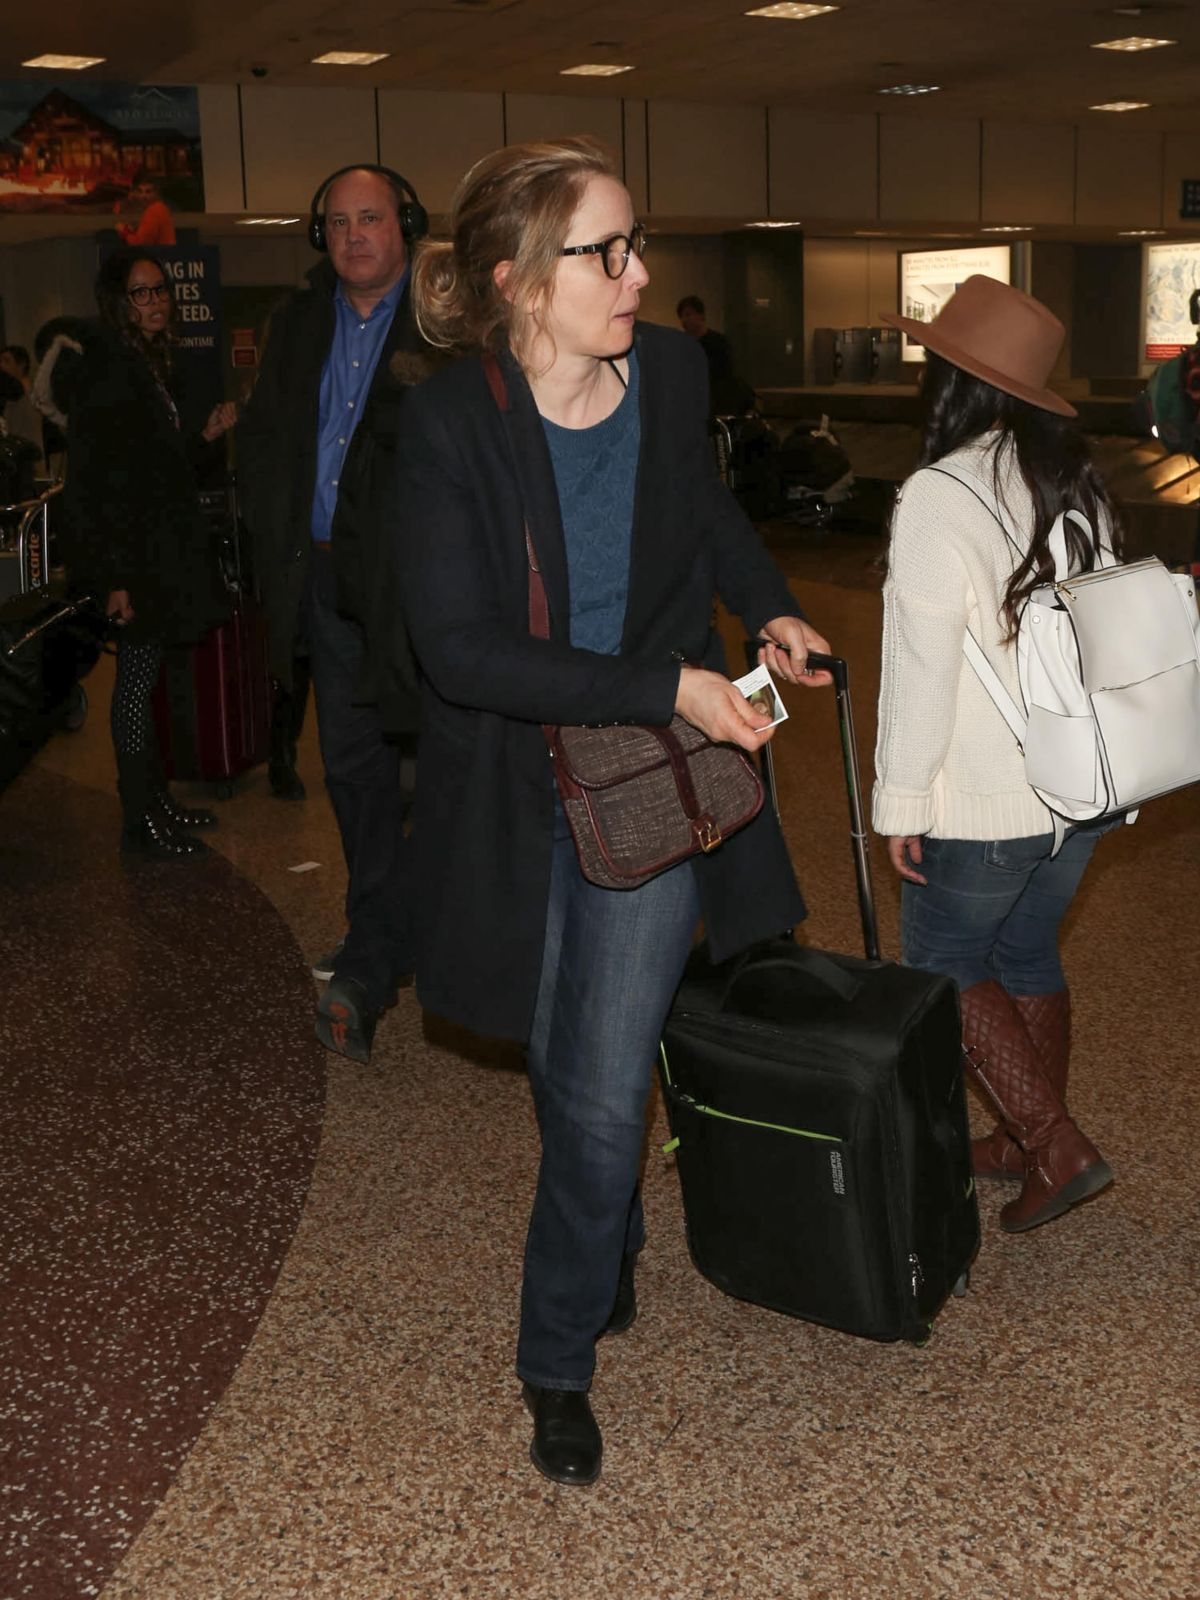 JULIE DELPY Arrives at SLC Airport for Sundance Film Festival 01/21/2016